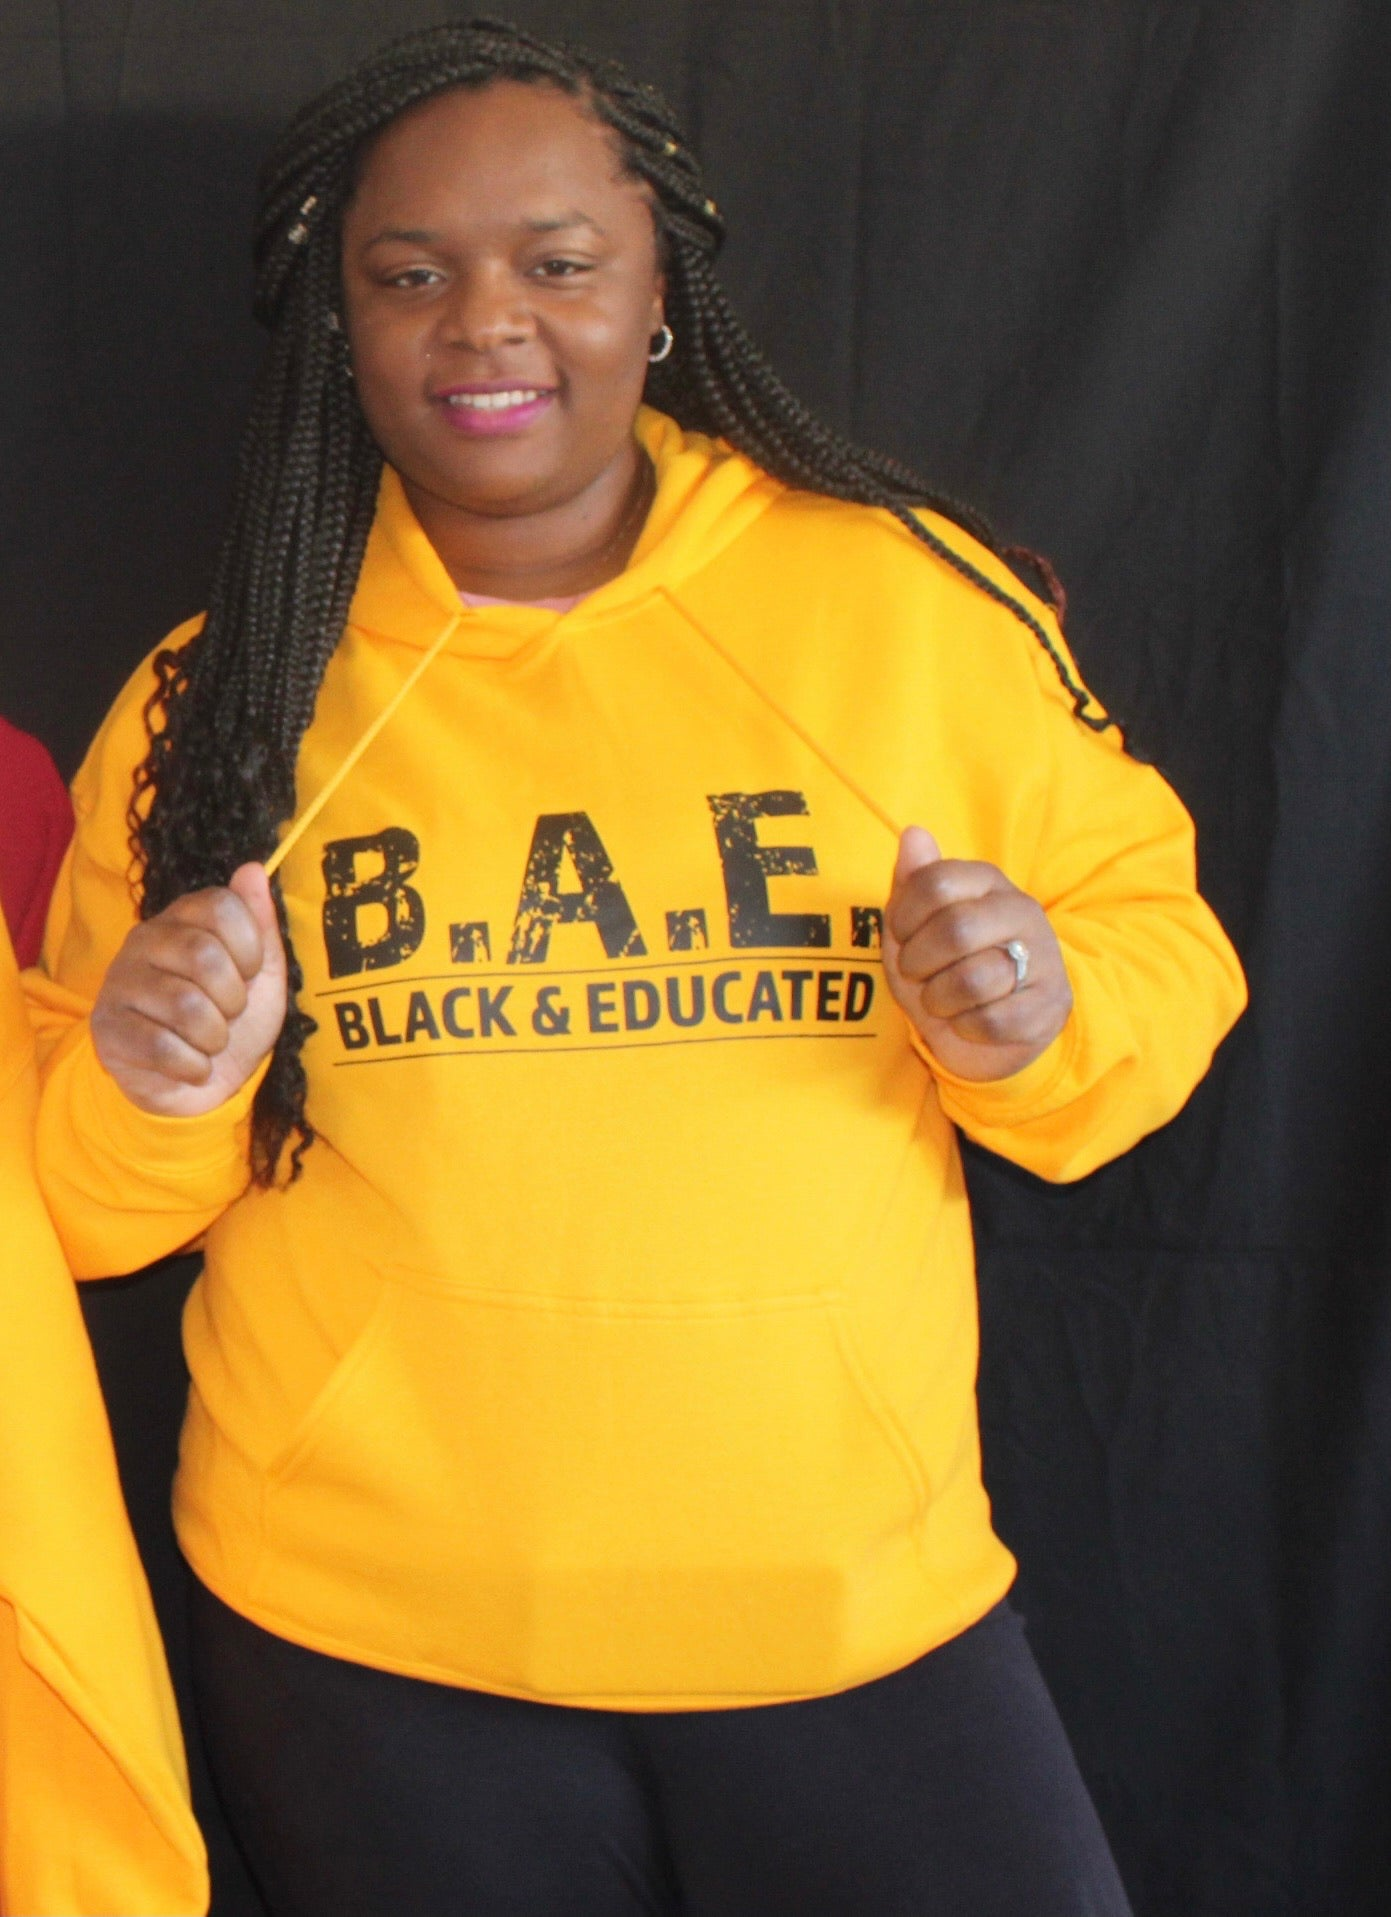 B.A.E. Black and Educated - Gold Hoodie